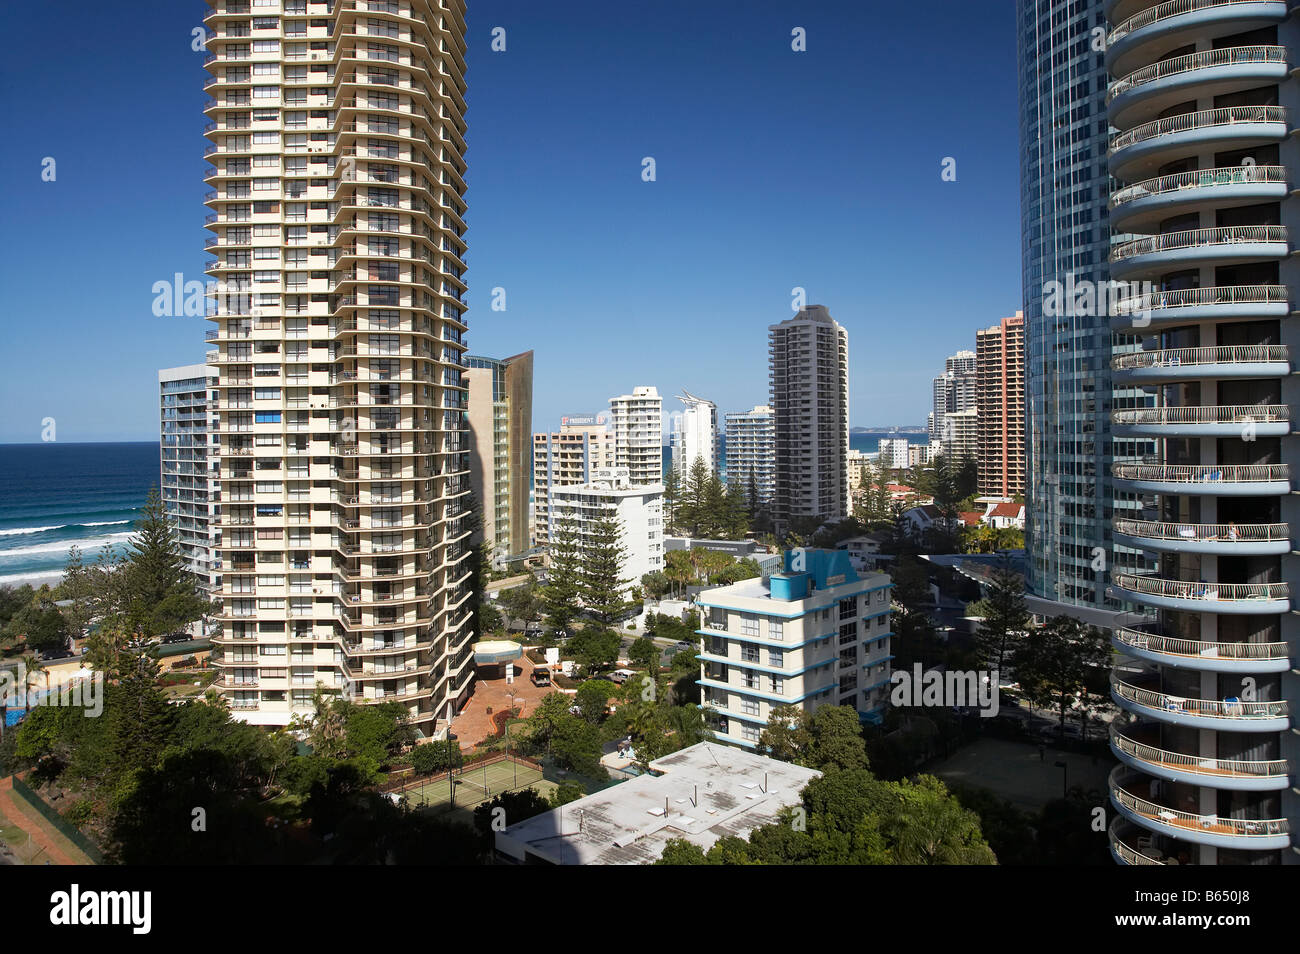 Peninsula and Aegean Resorts Surfers Paradise Gold Coast Queensland Australia - Stock Image